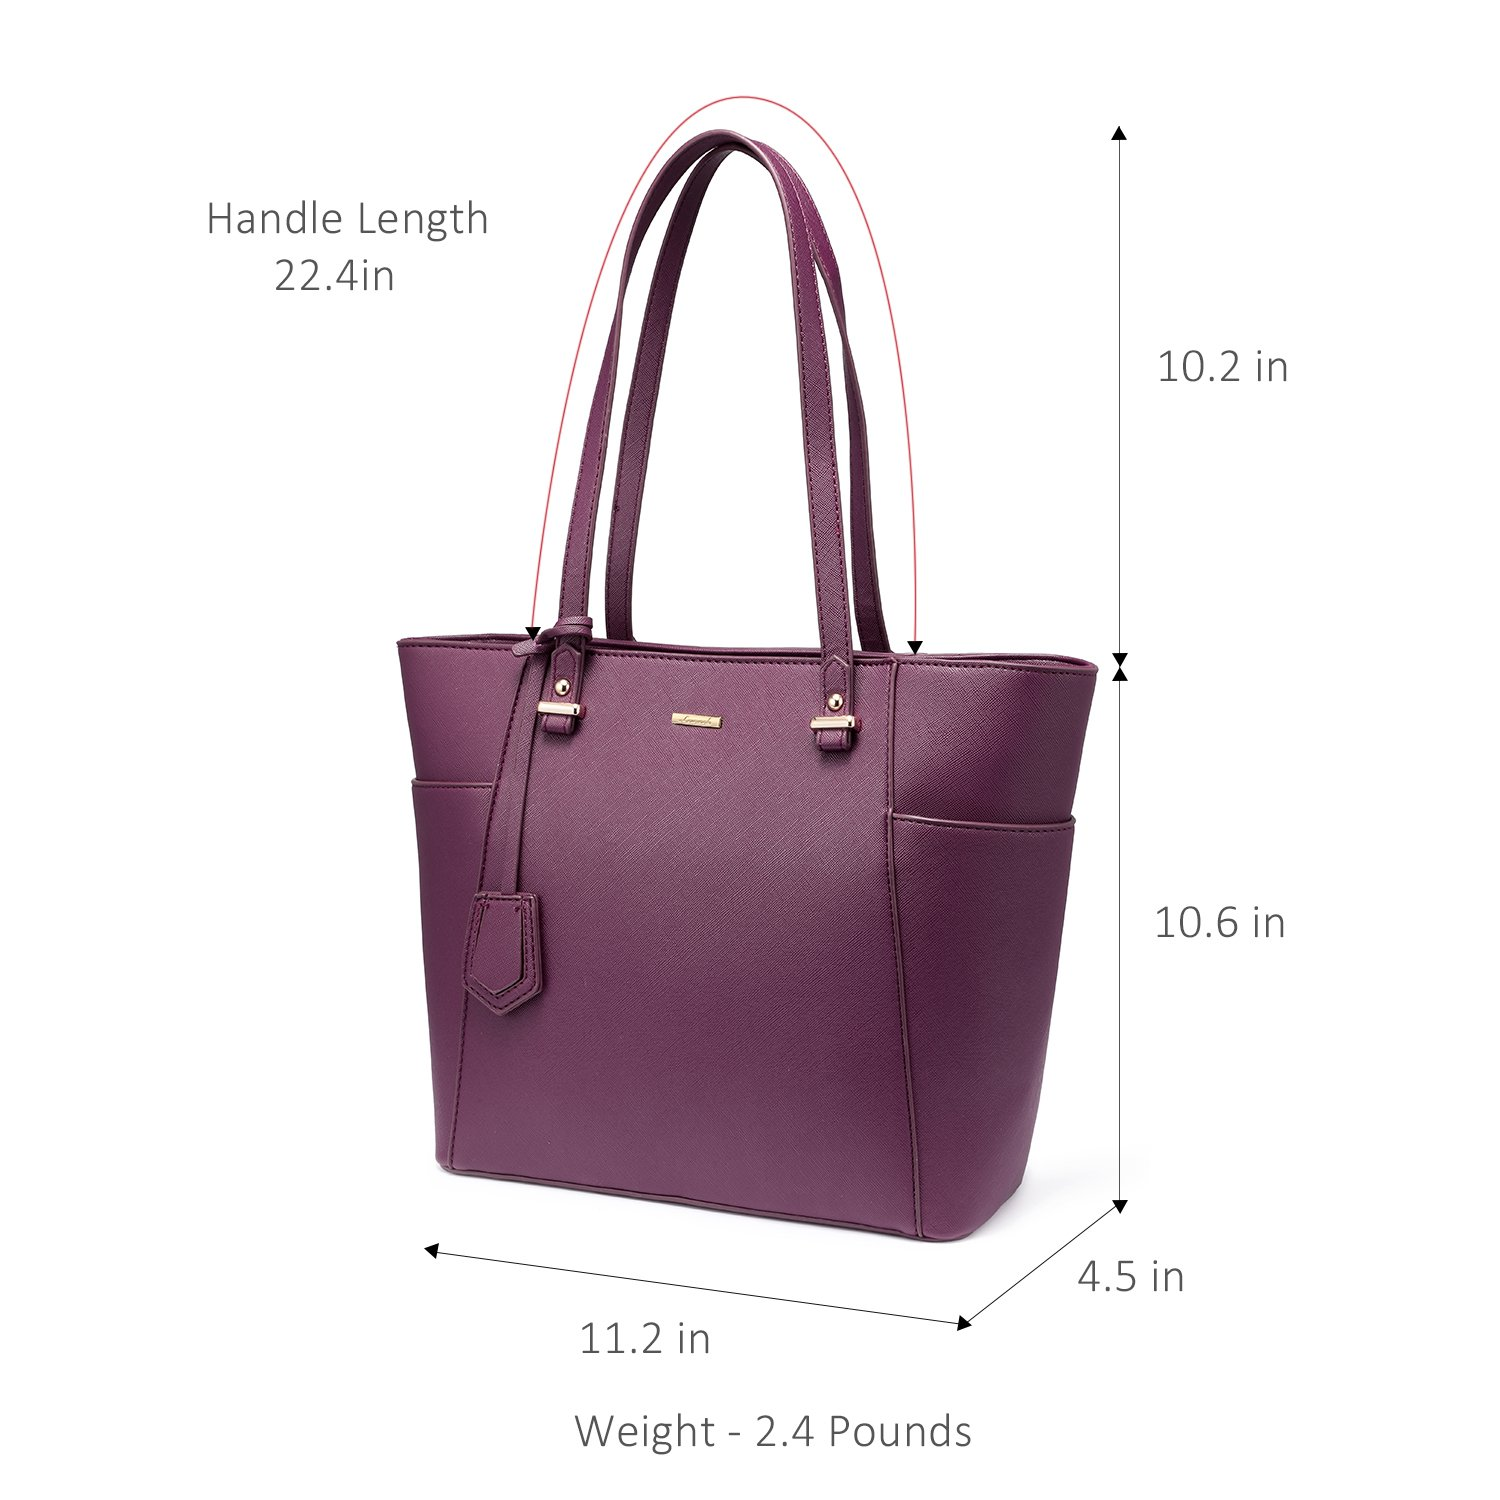 LOVEVOOK Women Purses and Handbags Chic Crossbody Bag Hobo 3pcs Large Capacity Purple by LOVEVOOK (Image #4)